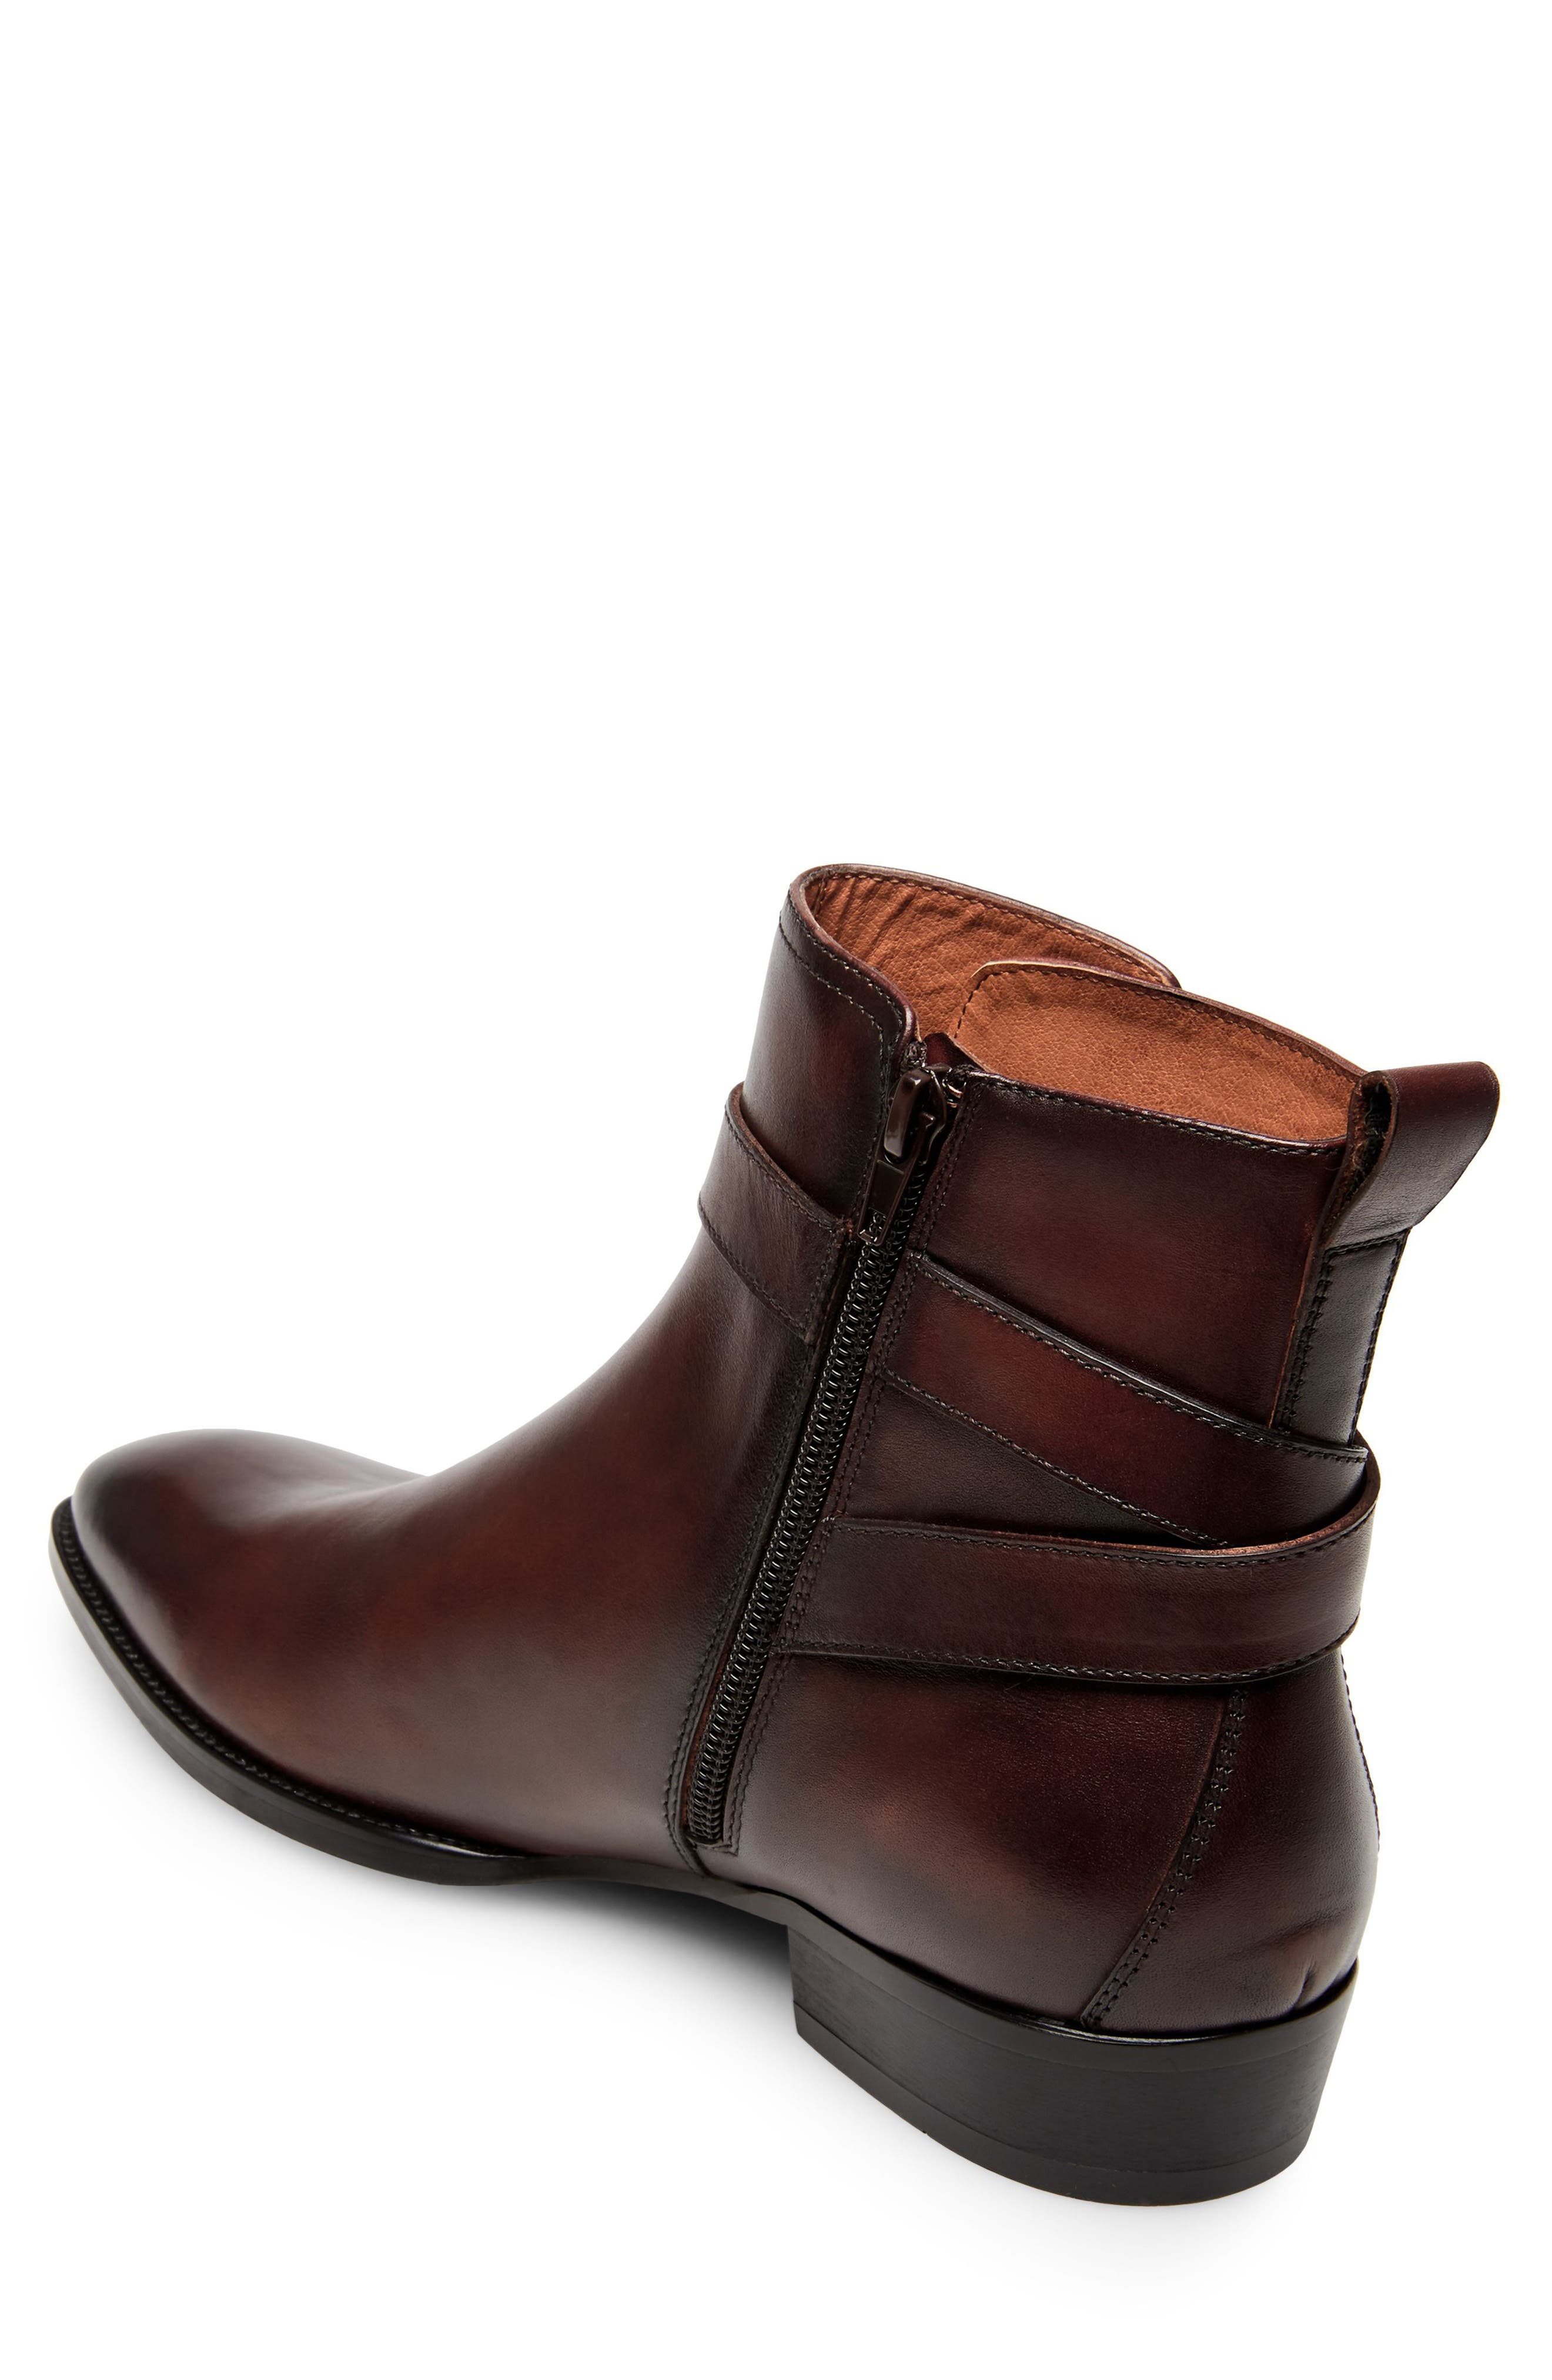 Sacha Buckle Strap Boot,                             Alternate thumbnail 2, color,                             200